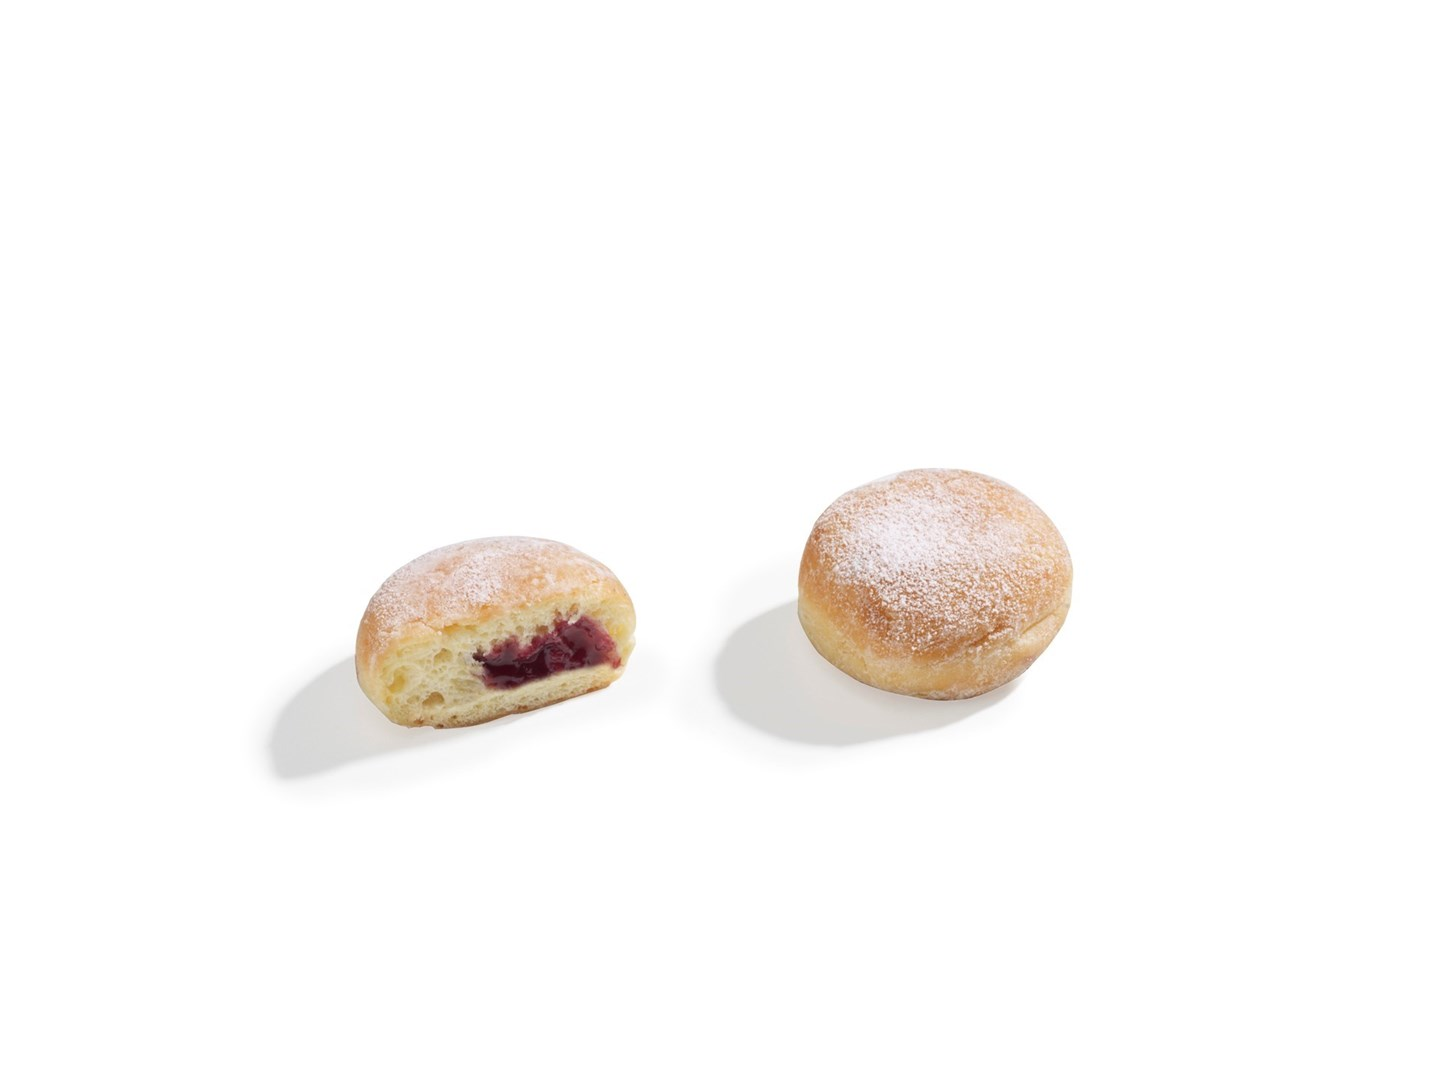 Productafbeelding MINI BEIGNET FRUITS ROUGES